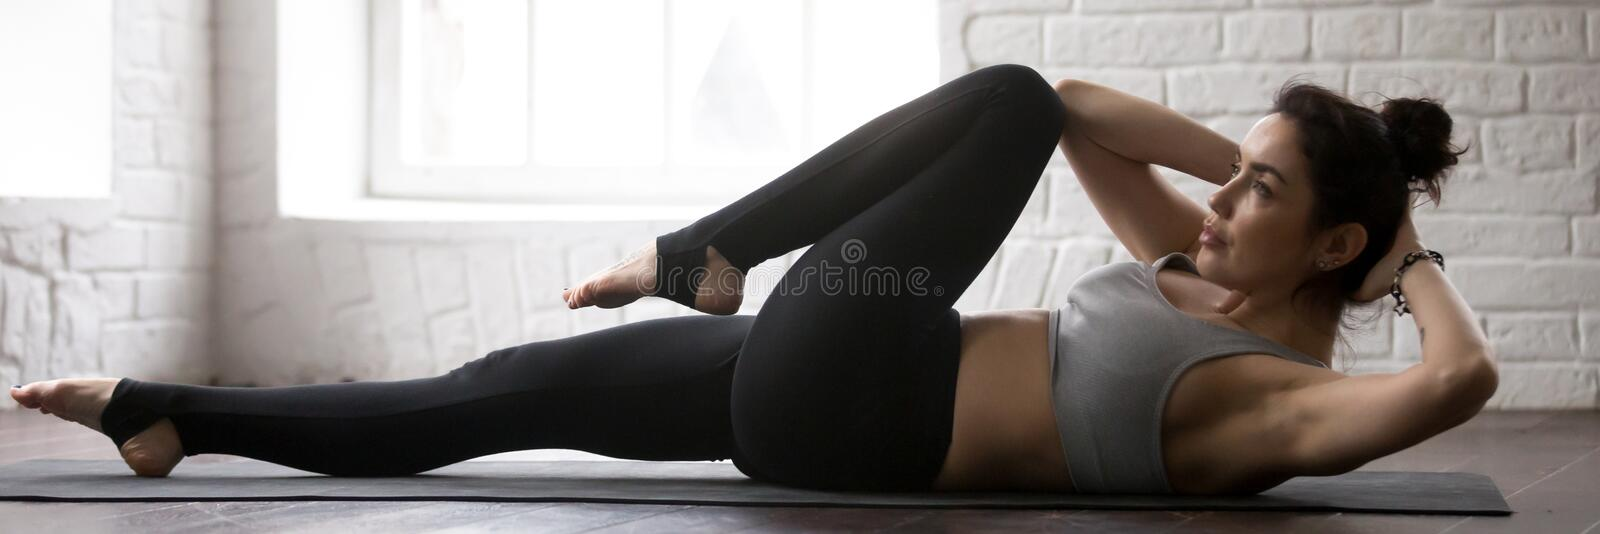 Horizontal image beautiful female doing bicycle crunches crisscross fitness exercise stock photos